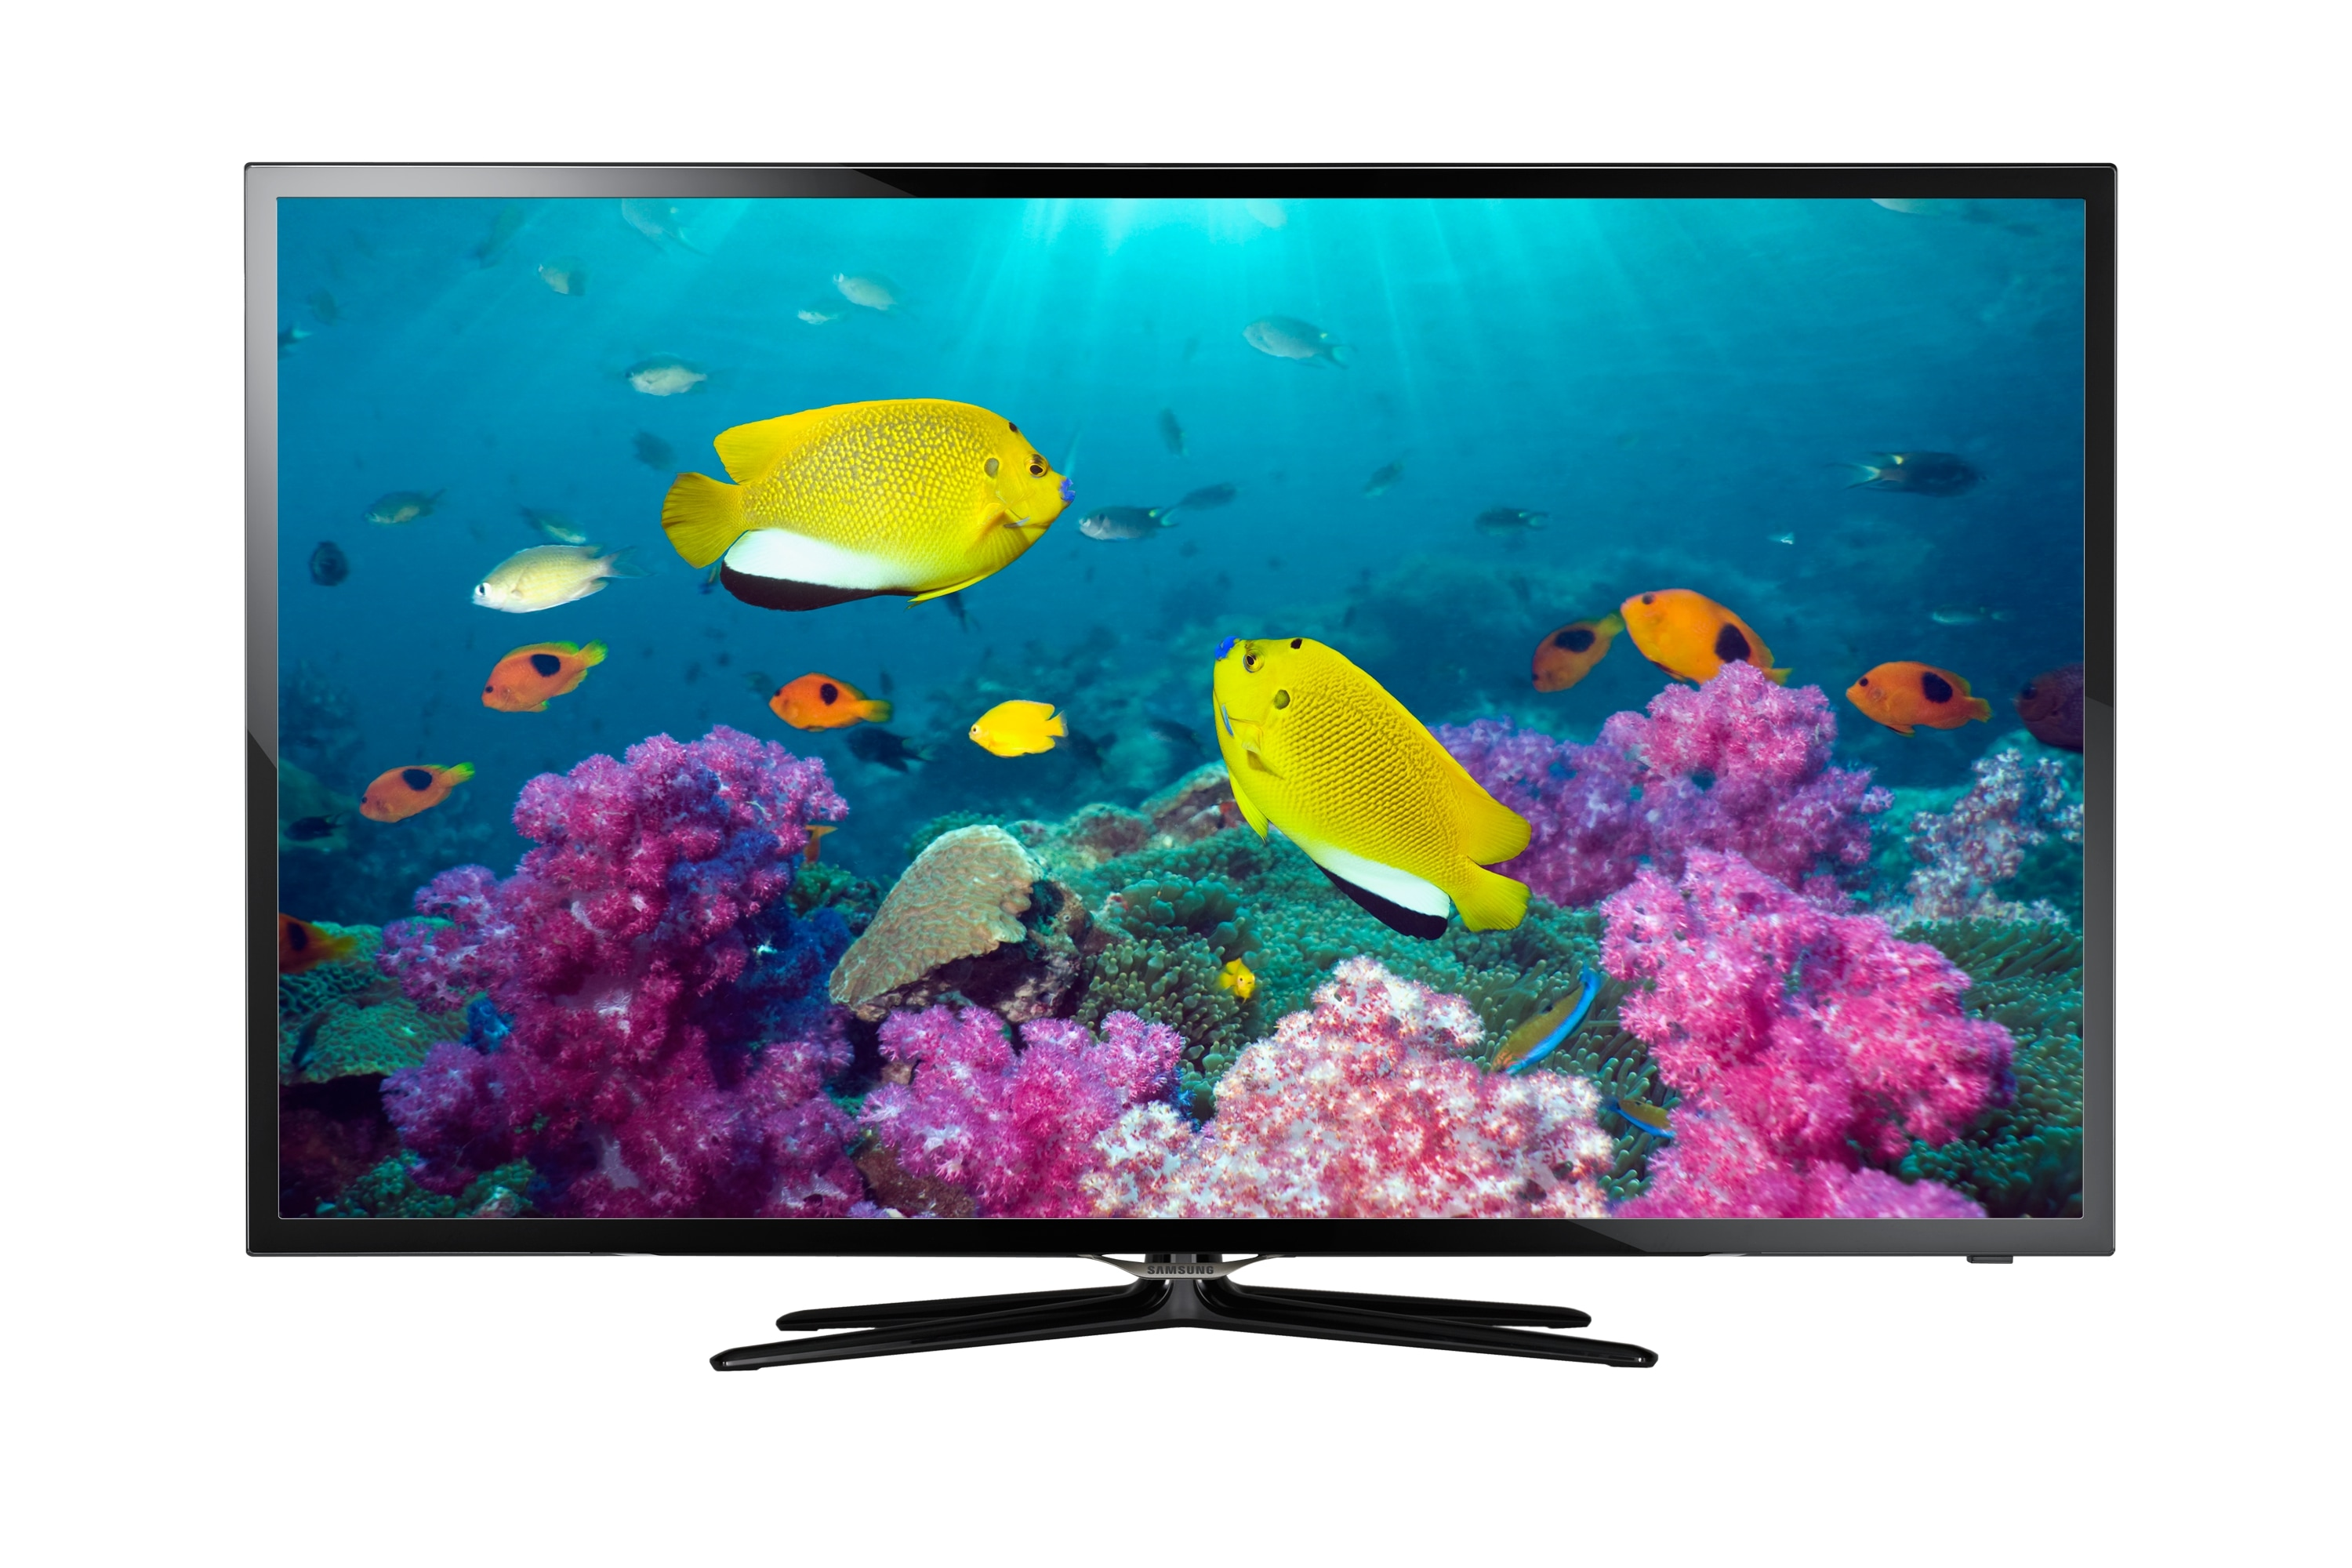 SMART TV 40 F5500 Full HD LED